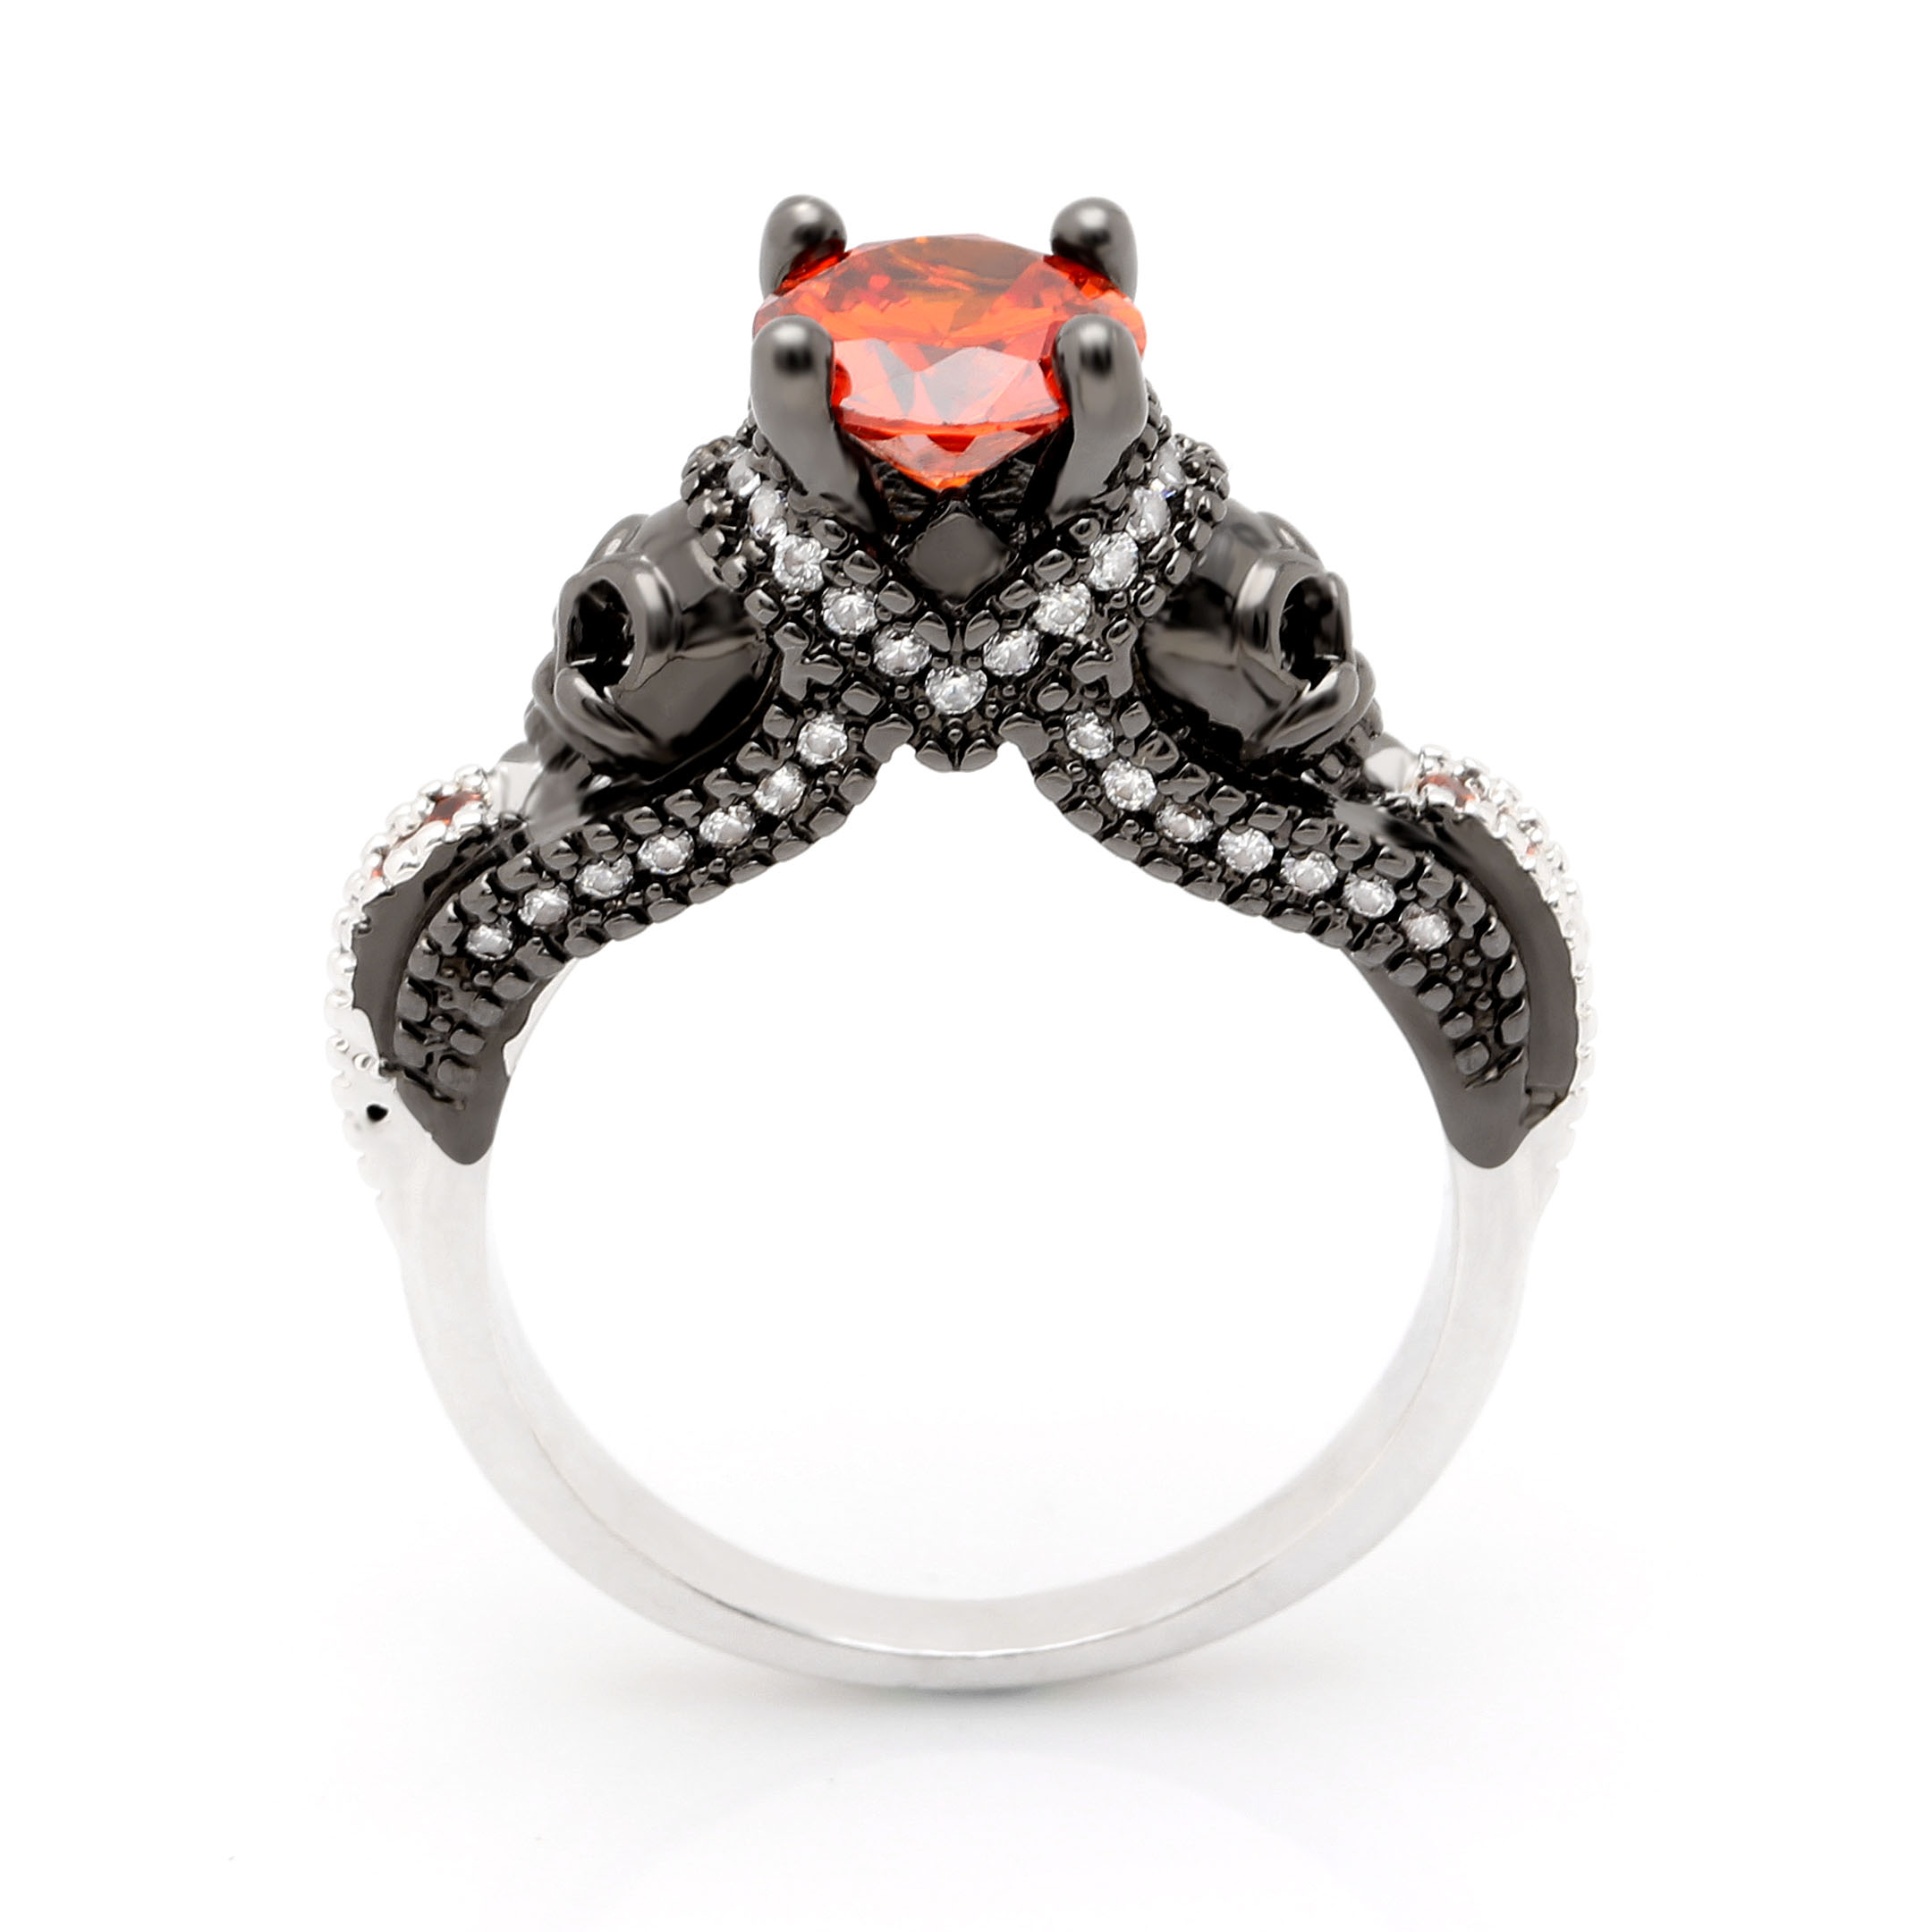 bands brides punk and spunky for engagement rock cool rings